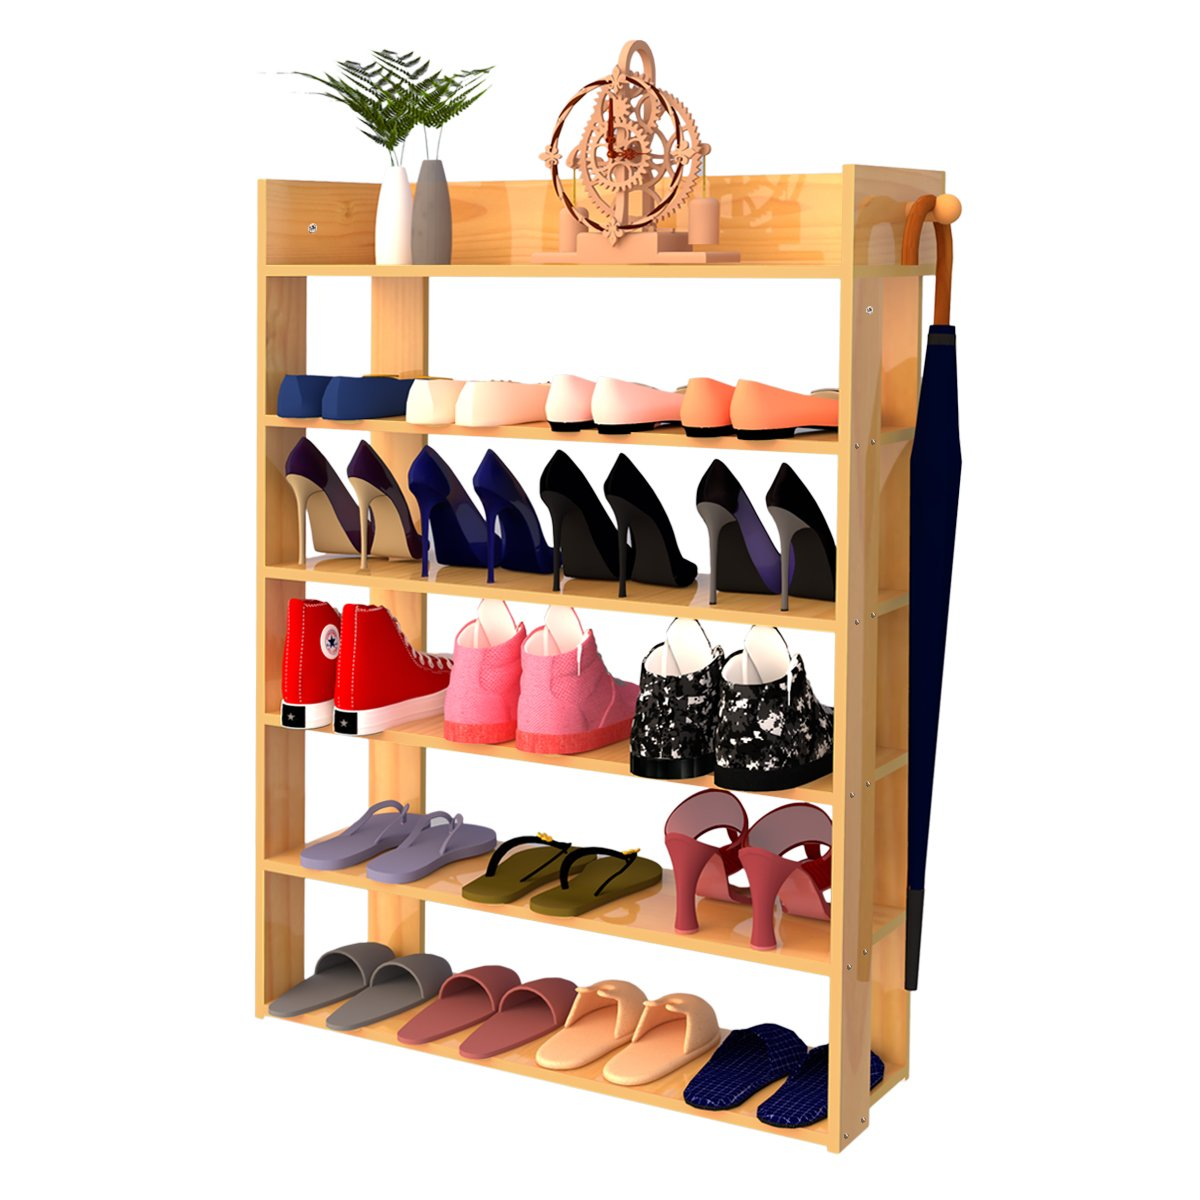 H&A 6 Tiers Natural Wood Shoe Rack Organizer Environment-friendly Shoe Storage Cabinet